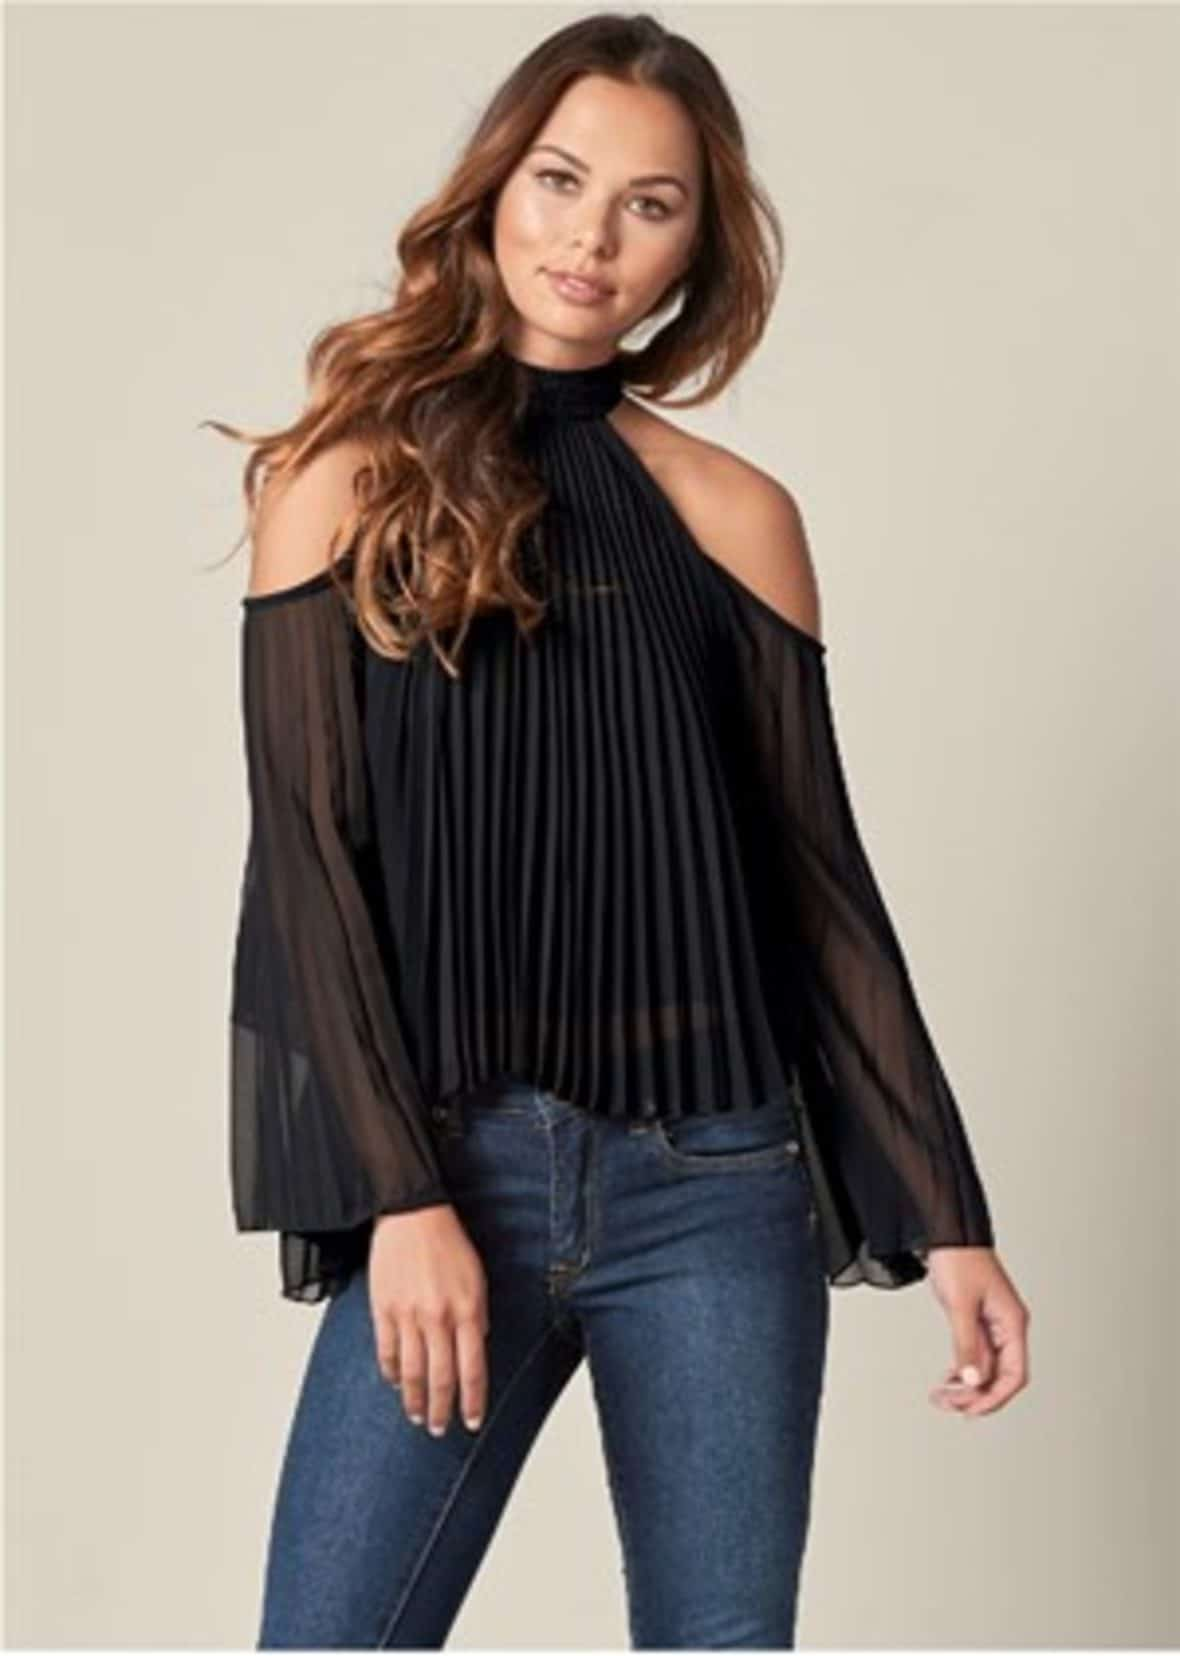 Venus pleated black top